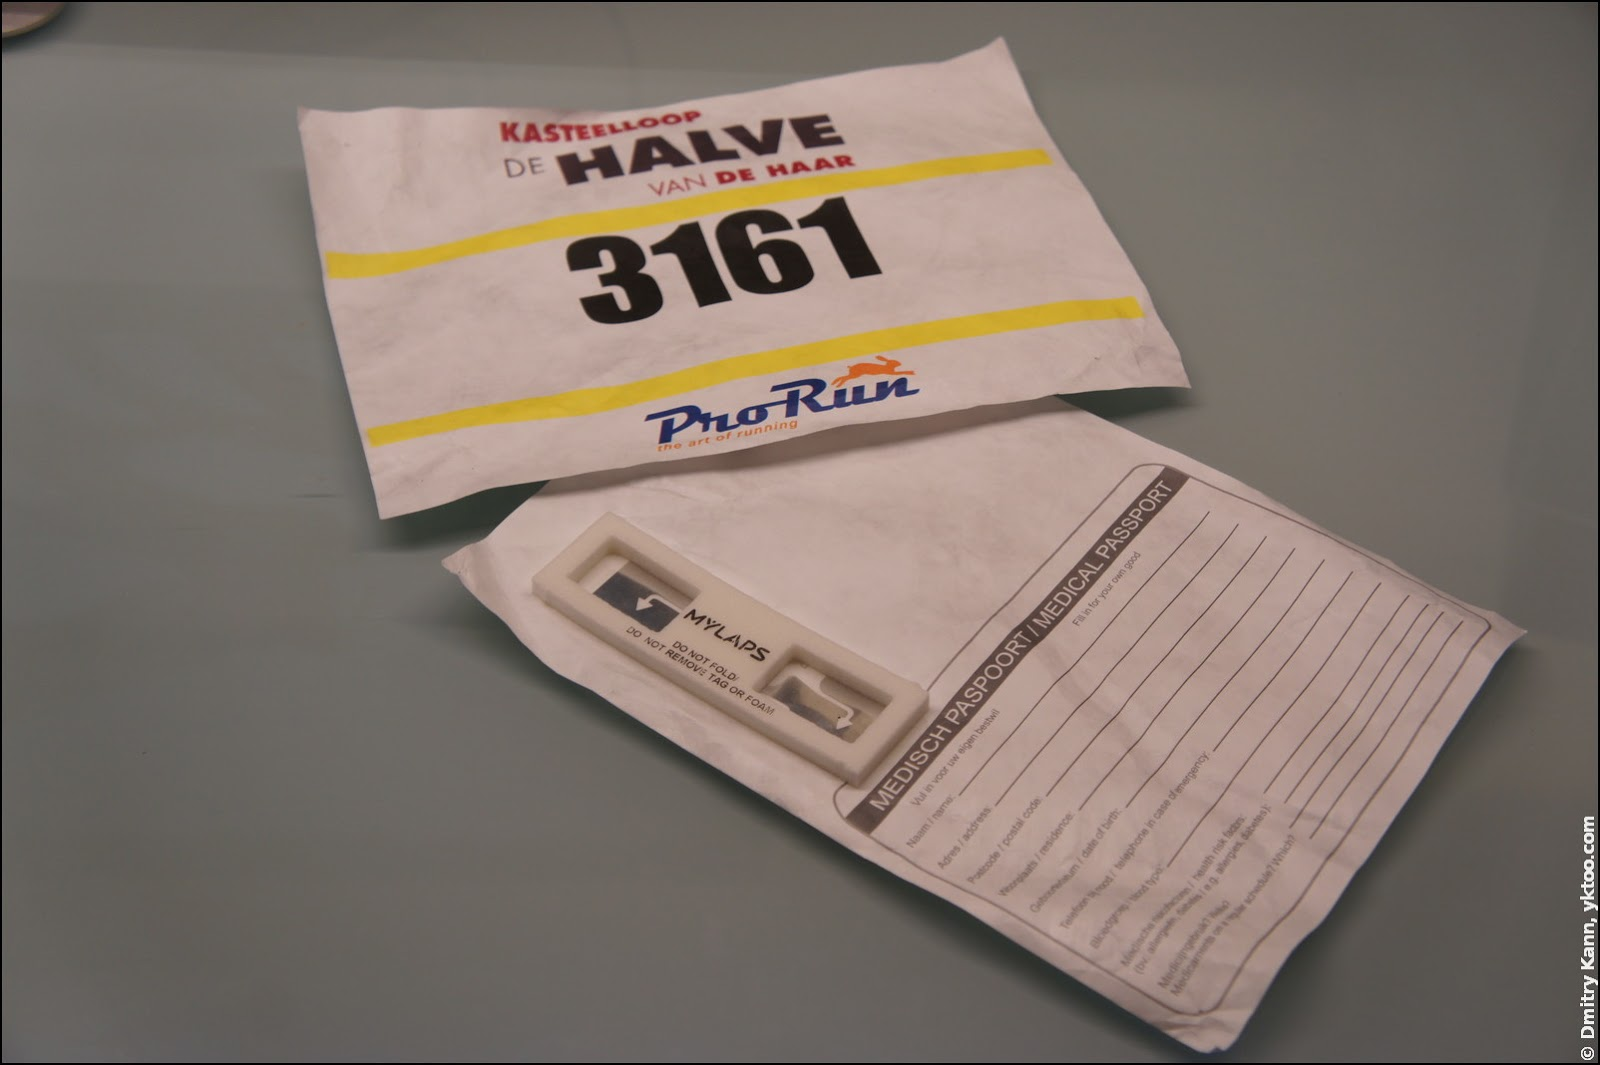 Bib number with an RFID chip.